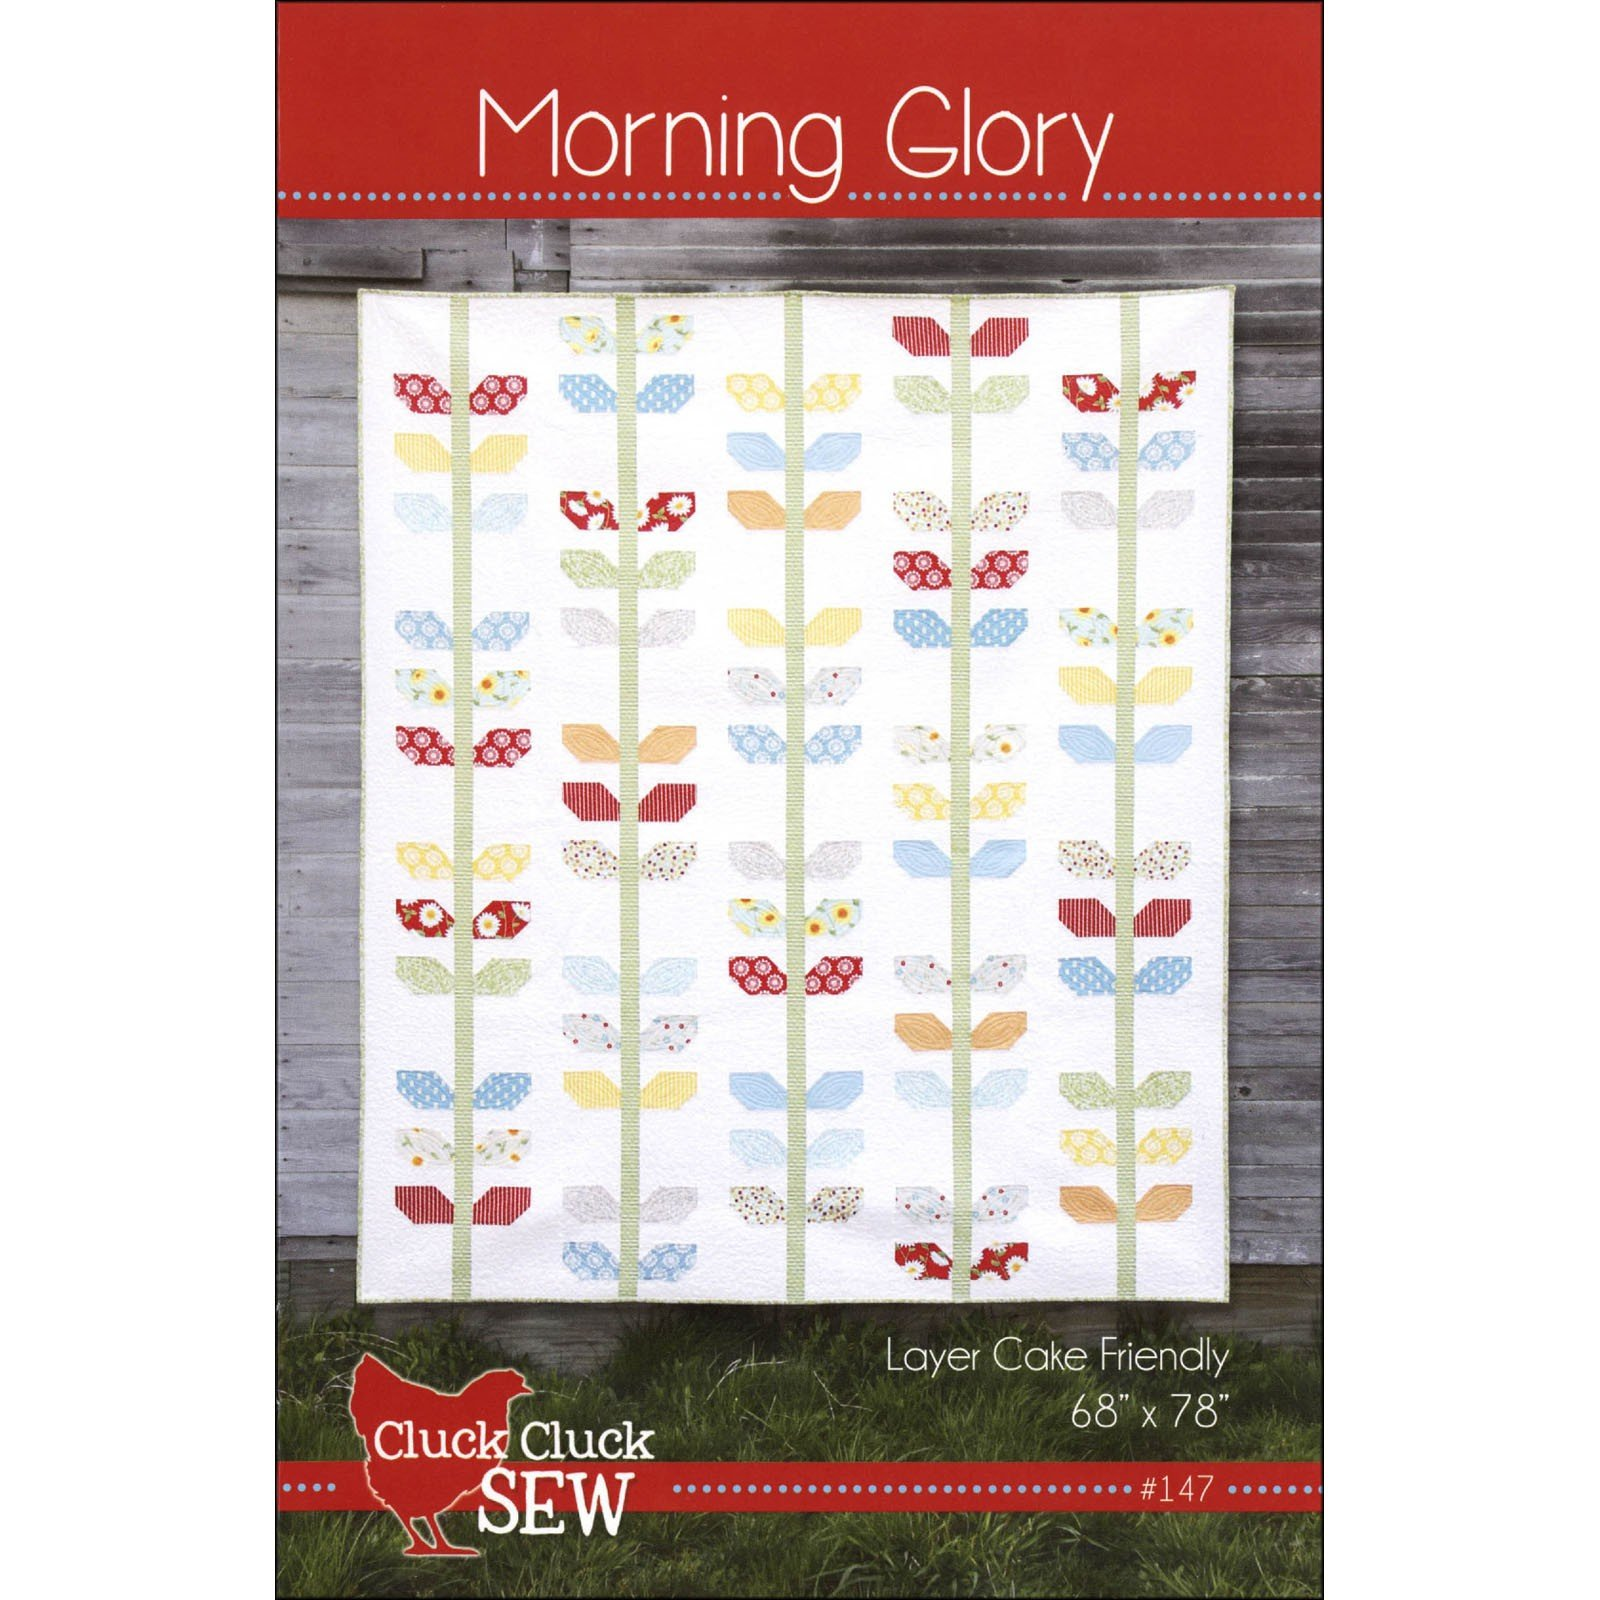 Morning Glory<br/>Cluck Cluck Sew